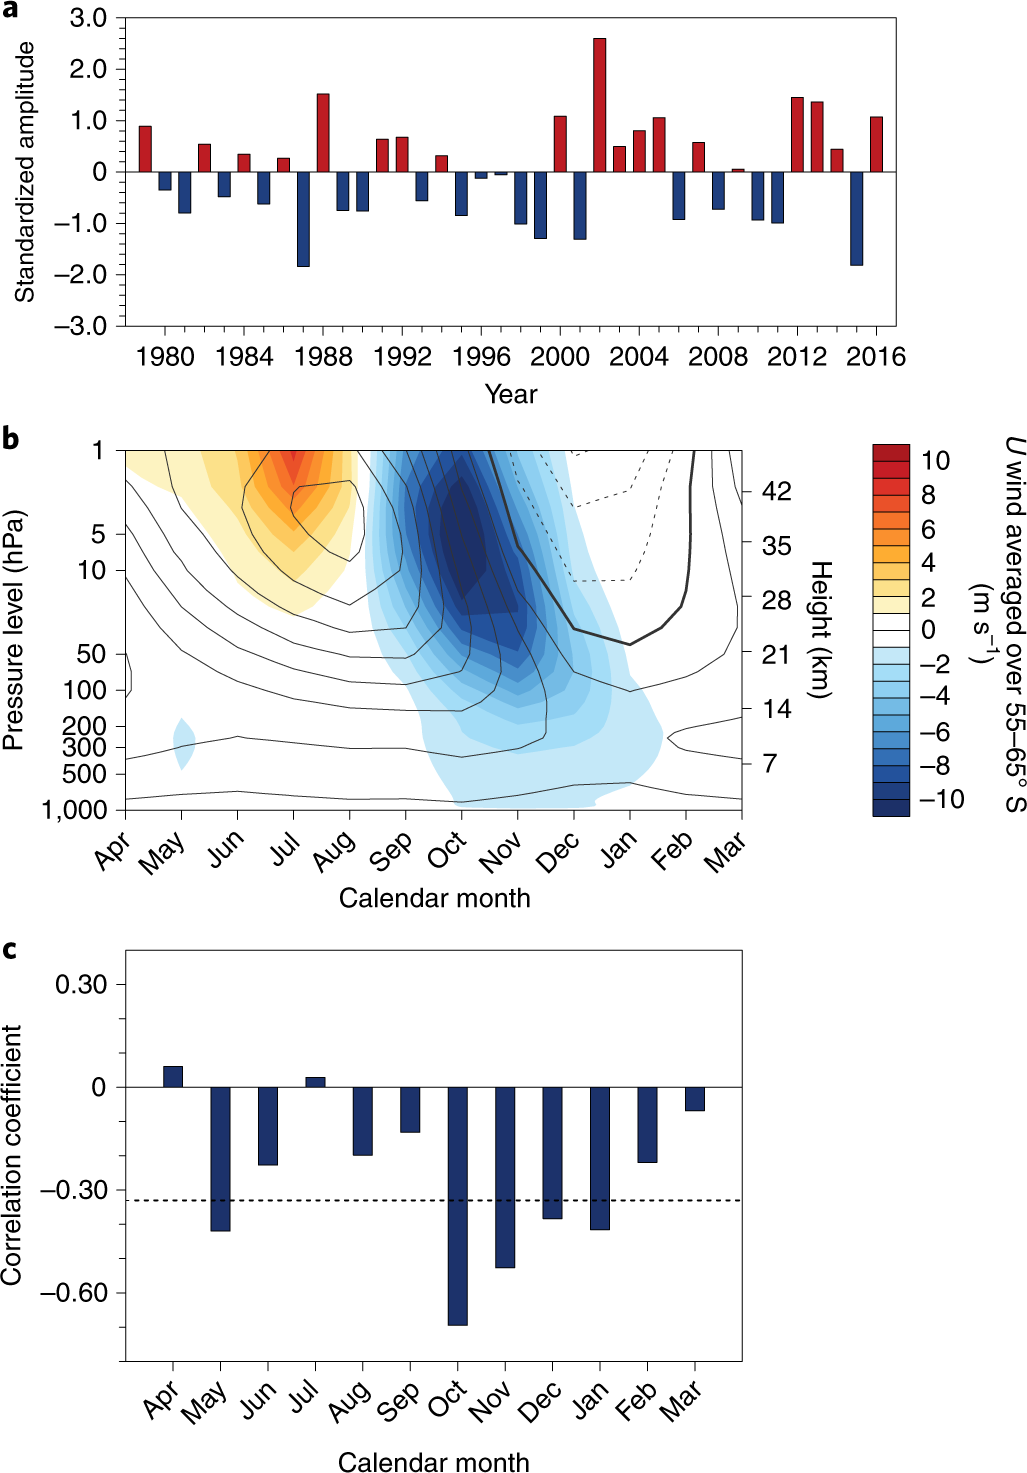 Australian hot and dry extremes induced by weakenings of the stratosph